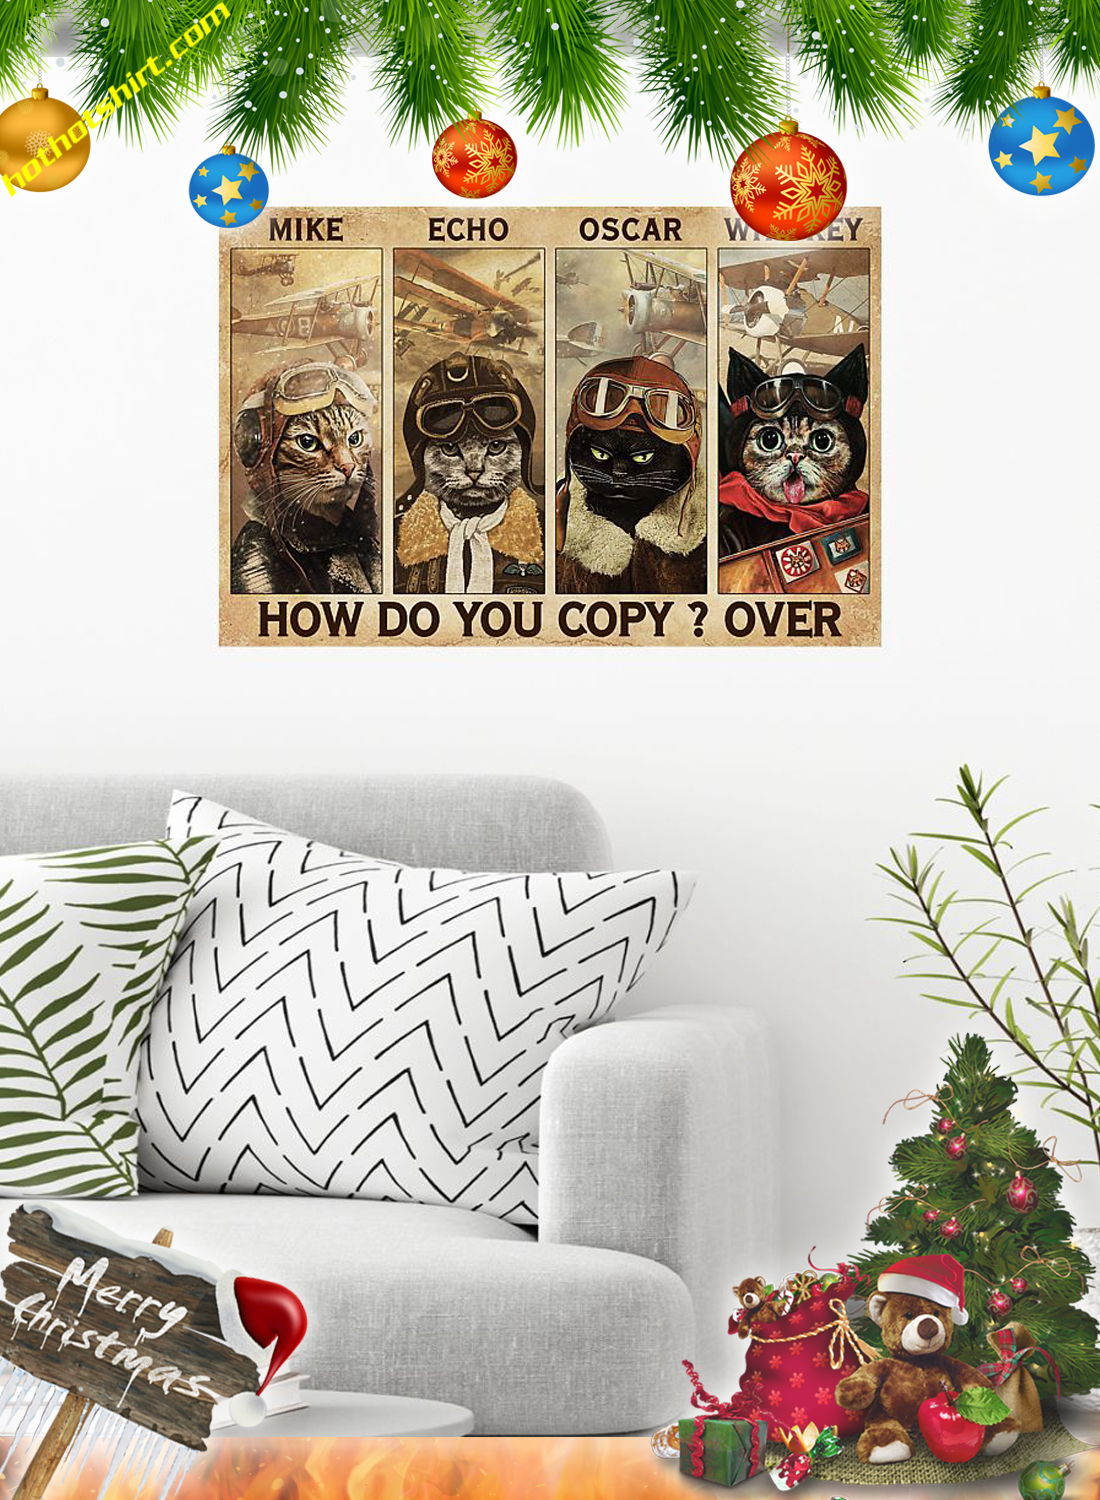 Cats pilot Mike echo oscar whiskey how do you copy over poster 1